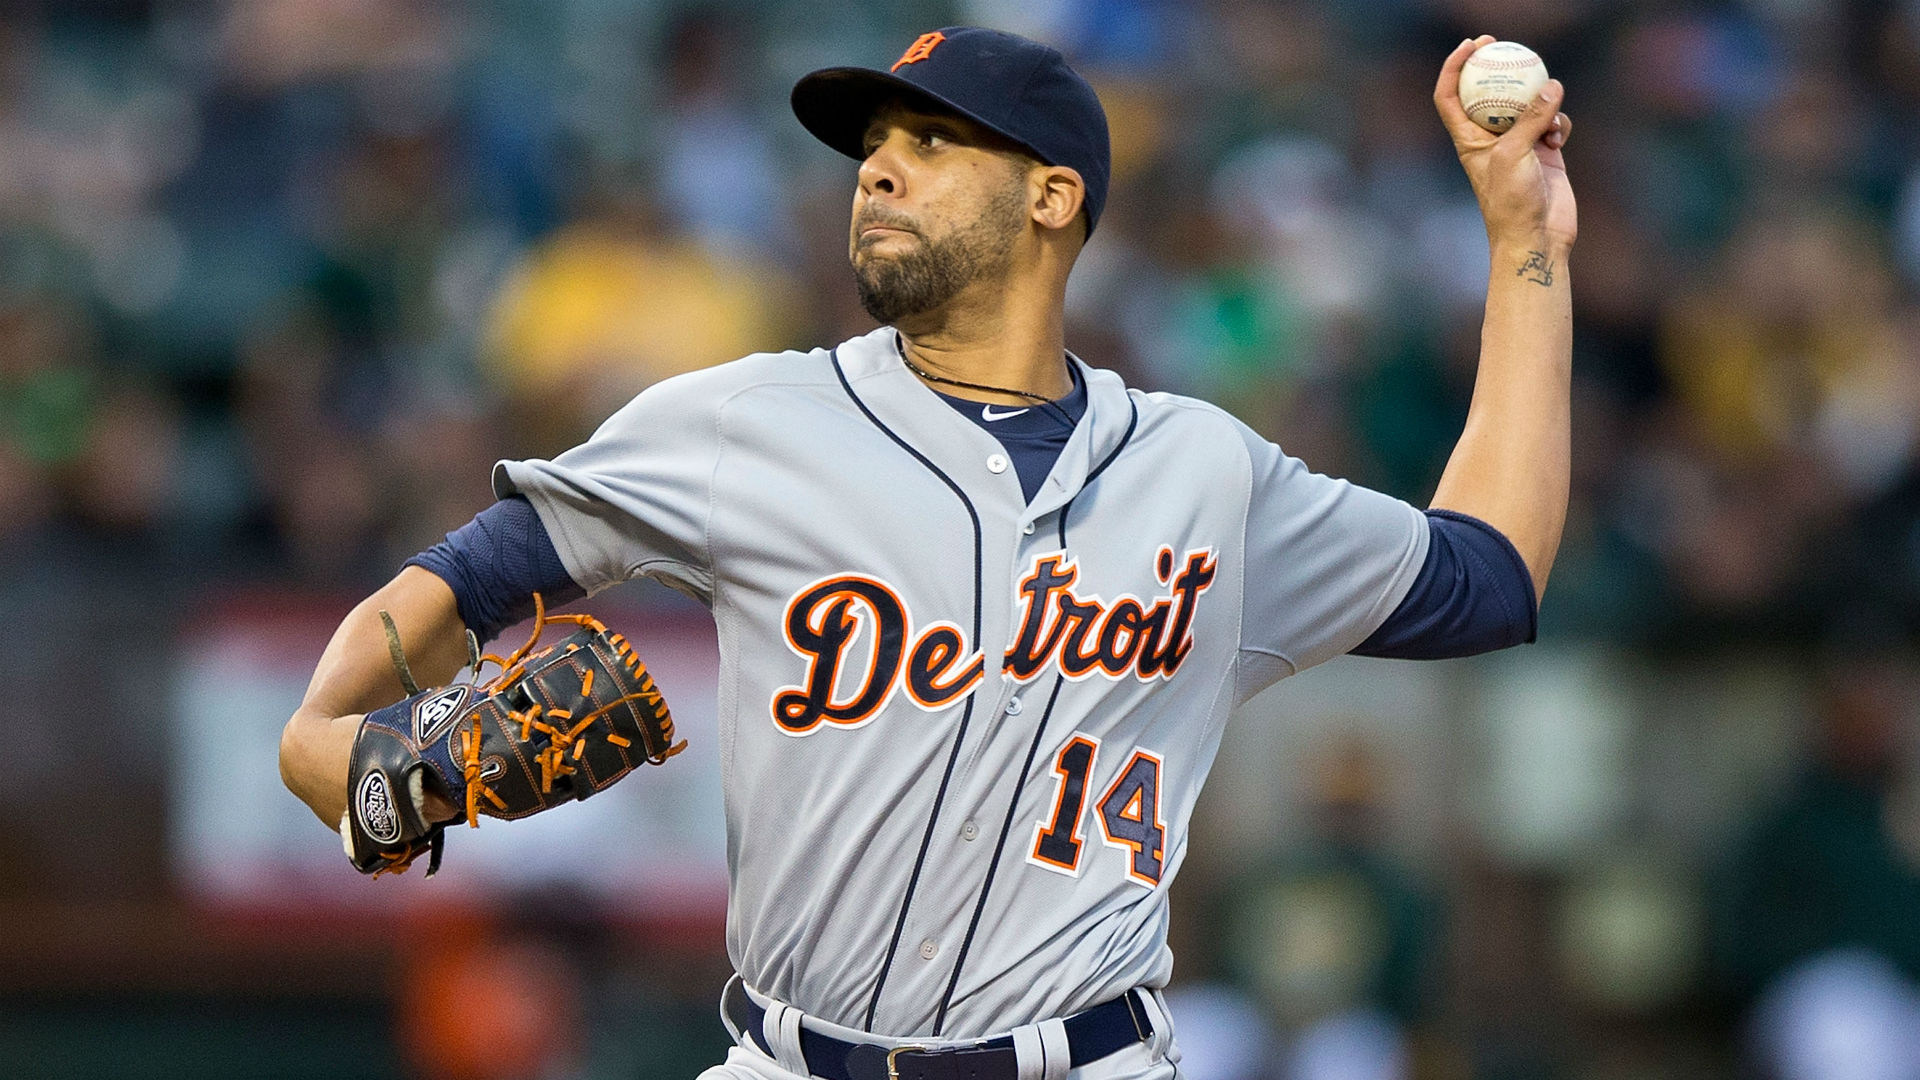 David-Price-060515-GETTY-FTR